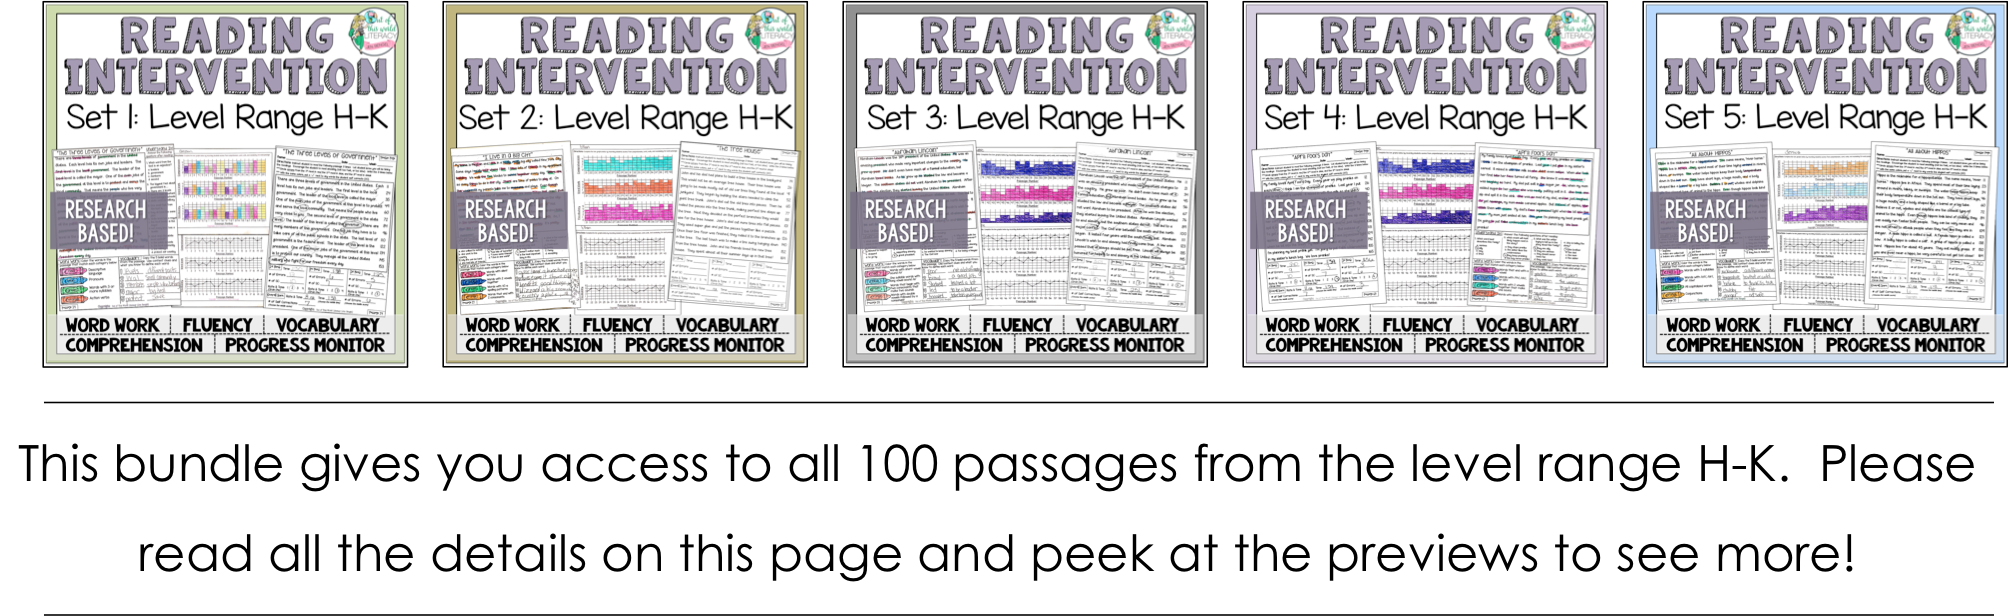 Reading intervention program sets h k jen bengel each passage is not individually leveled however they range from fountas and pinnell levels h k nvjuhfo Image collections